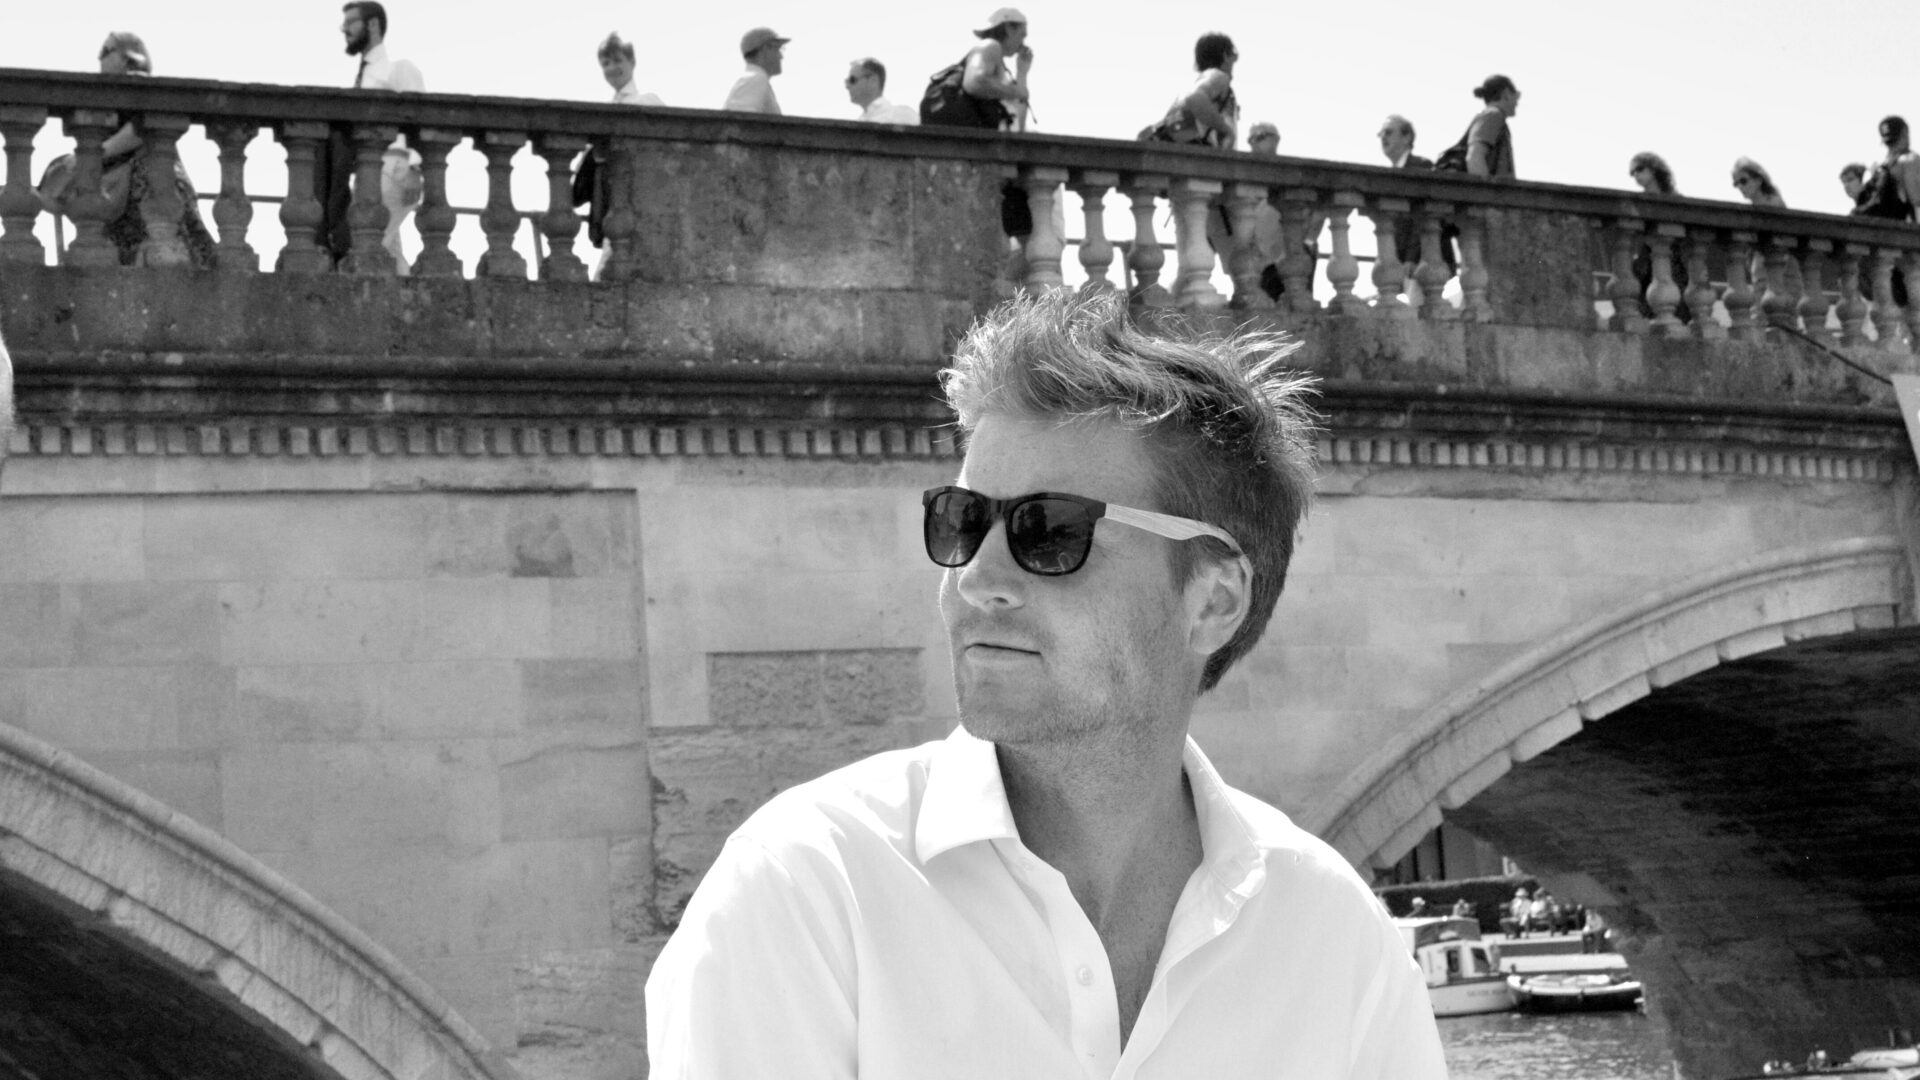 Black and white photo of Sam White wearing sunglasses in front of a classical stone bridge